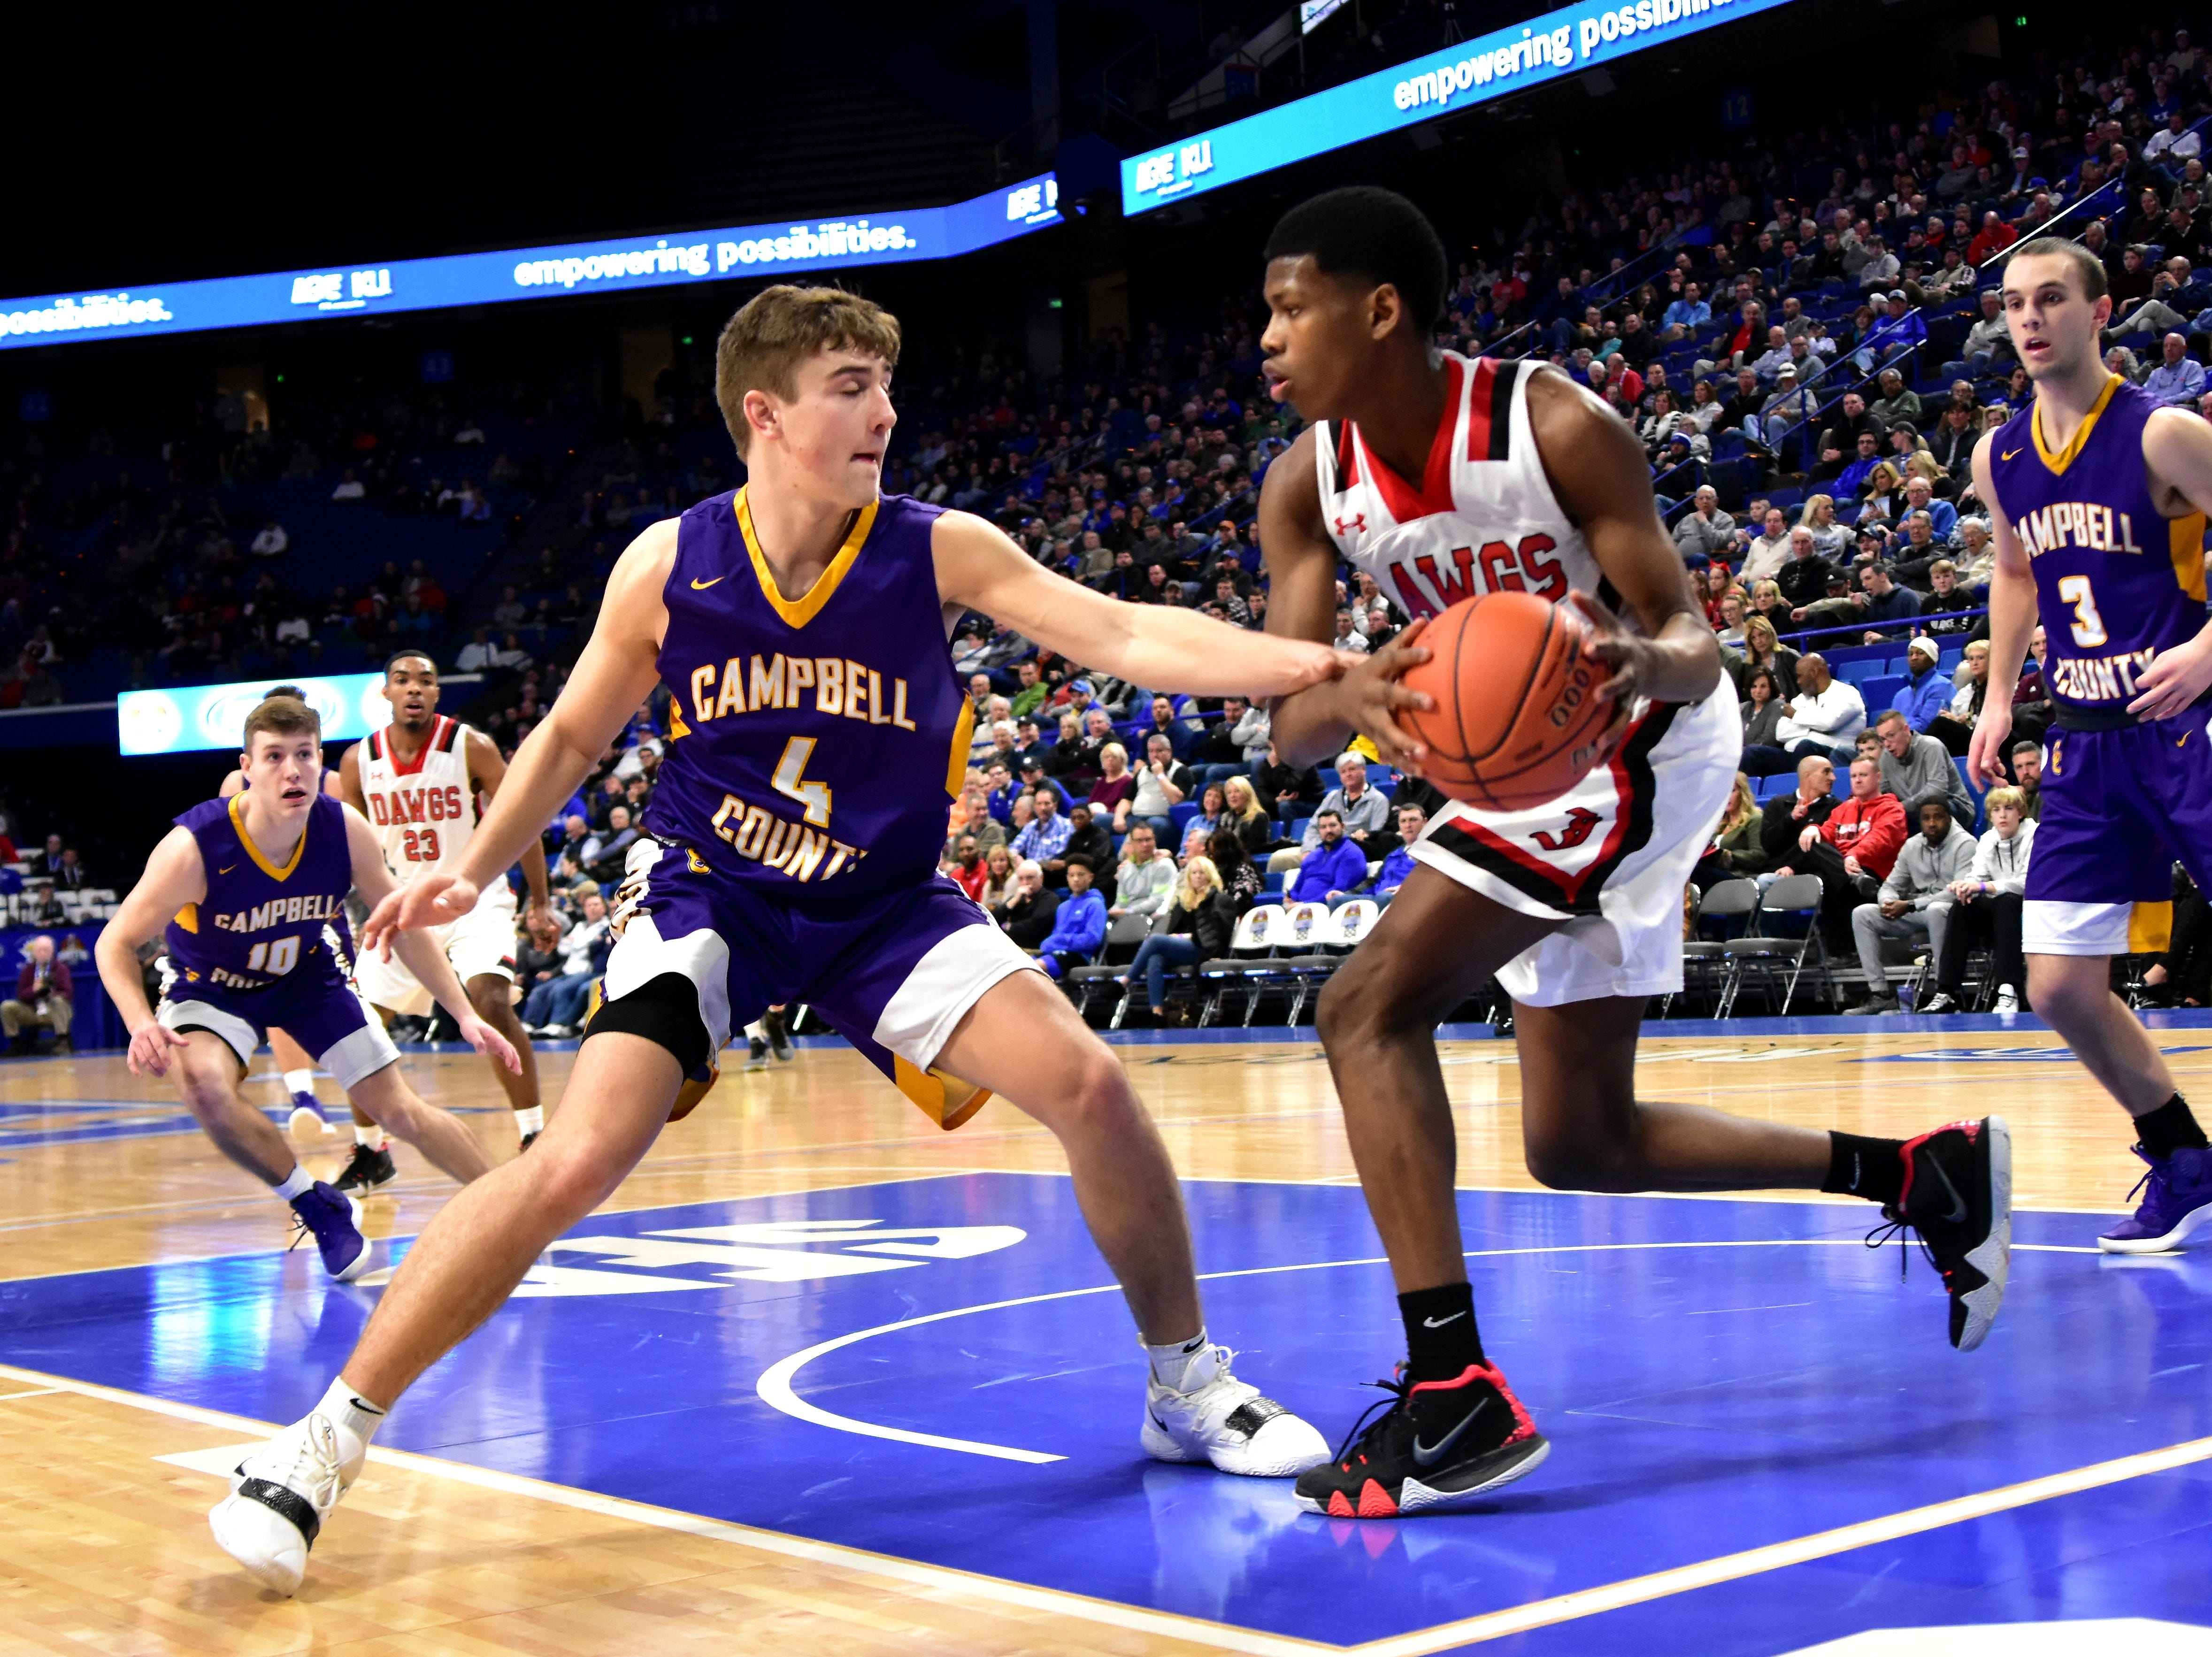 Drew Wilson (4) of Campbell County applies the full court press on John Hardin at the KHSAA Sweet 16 Tournament at Rupp Arena in Lexington, KY, March 6, 2019